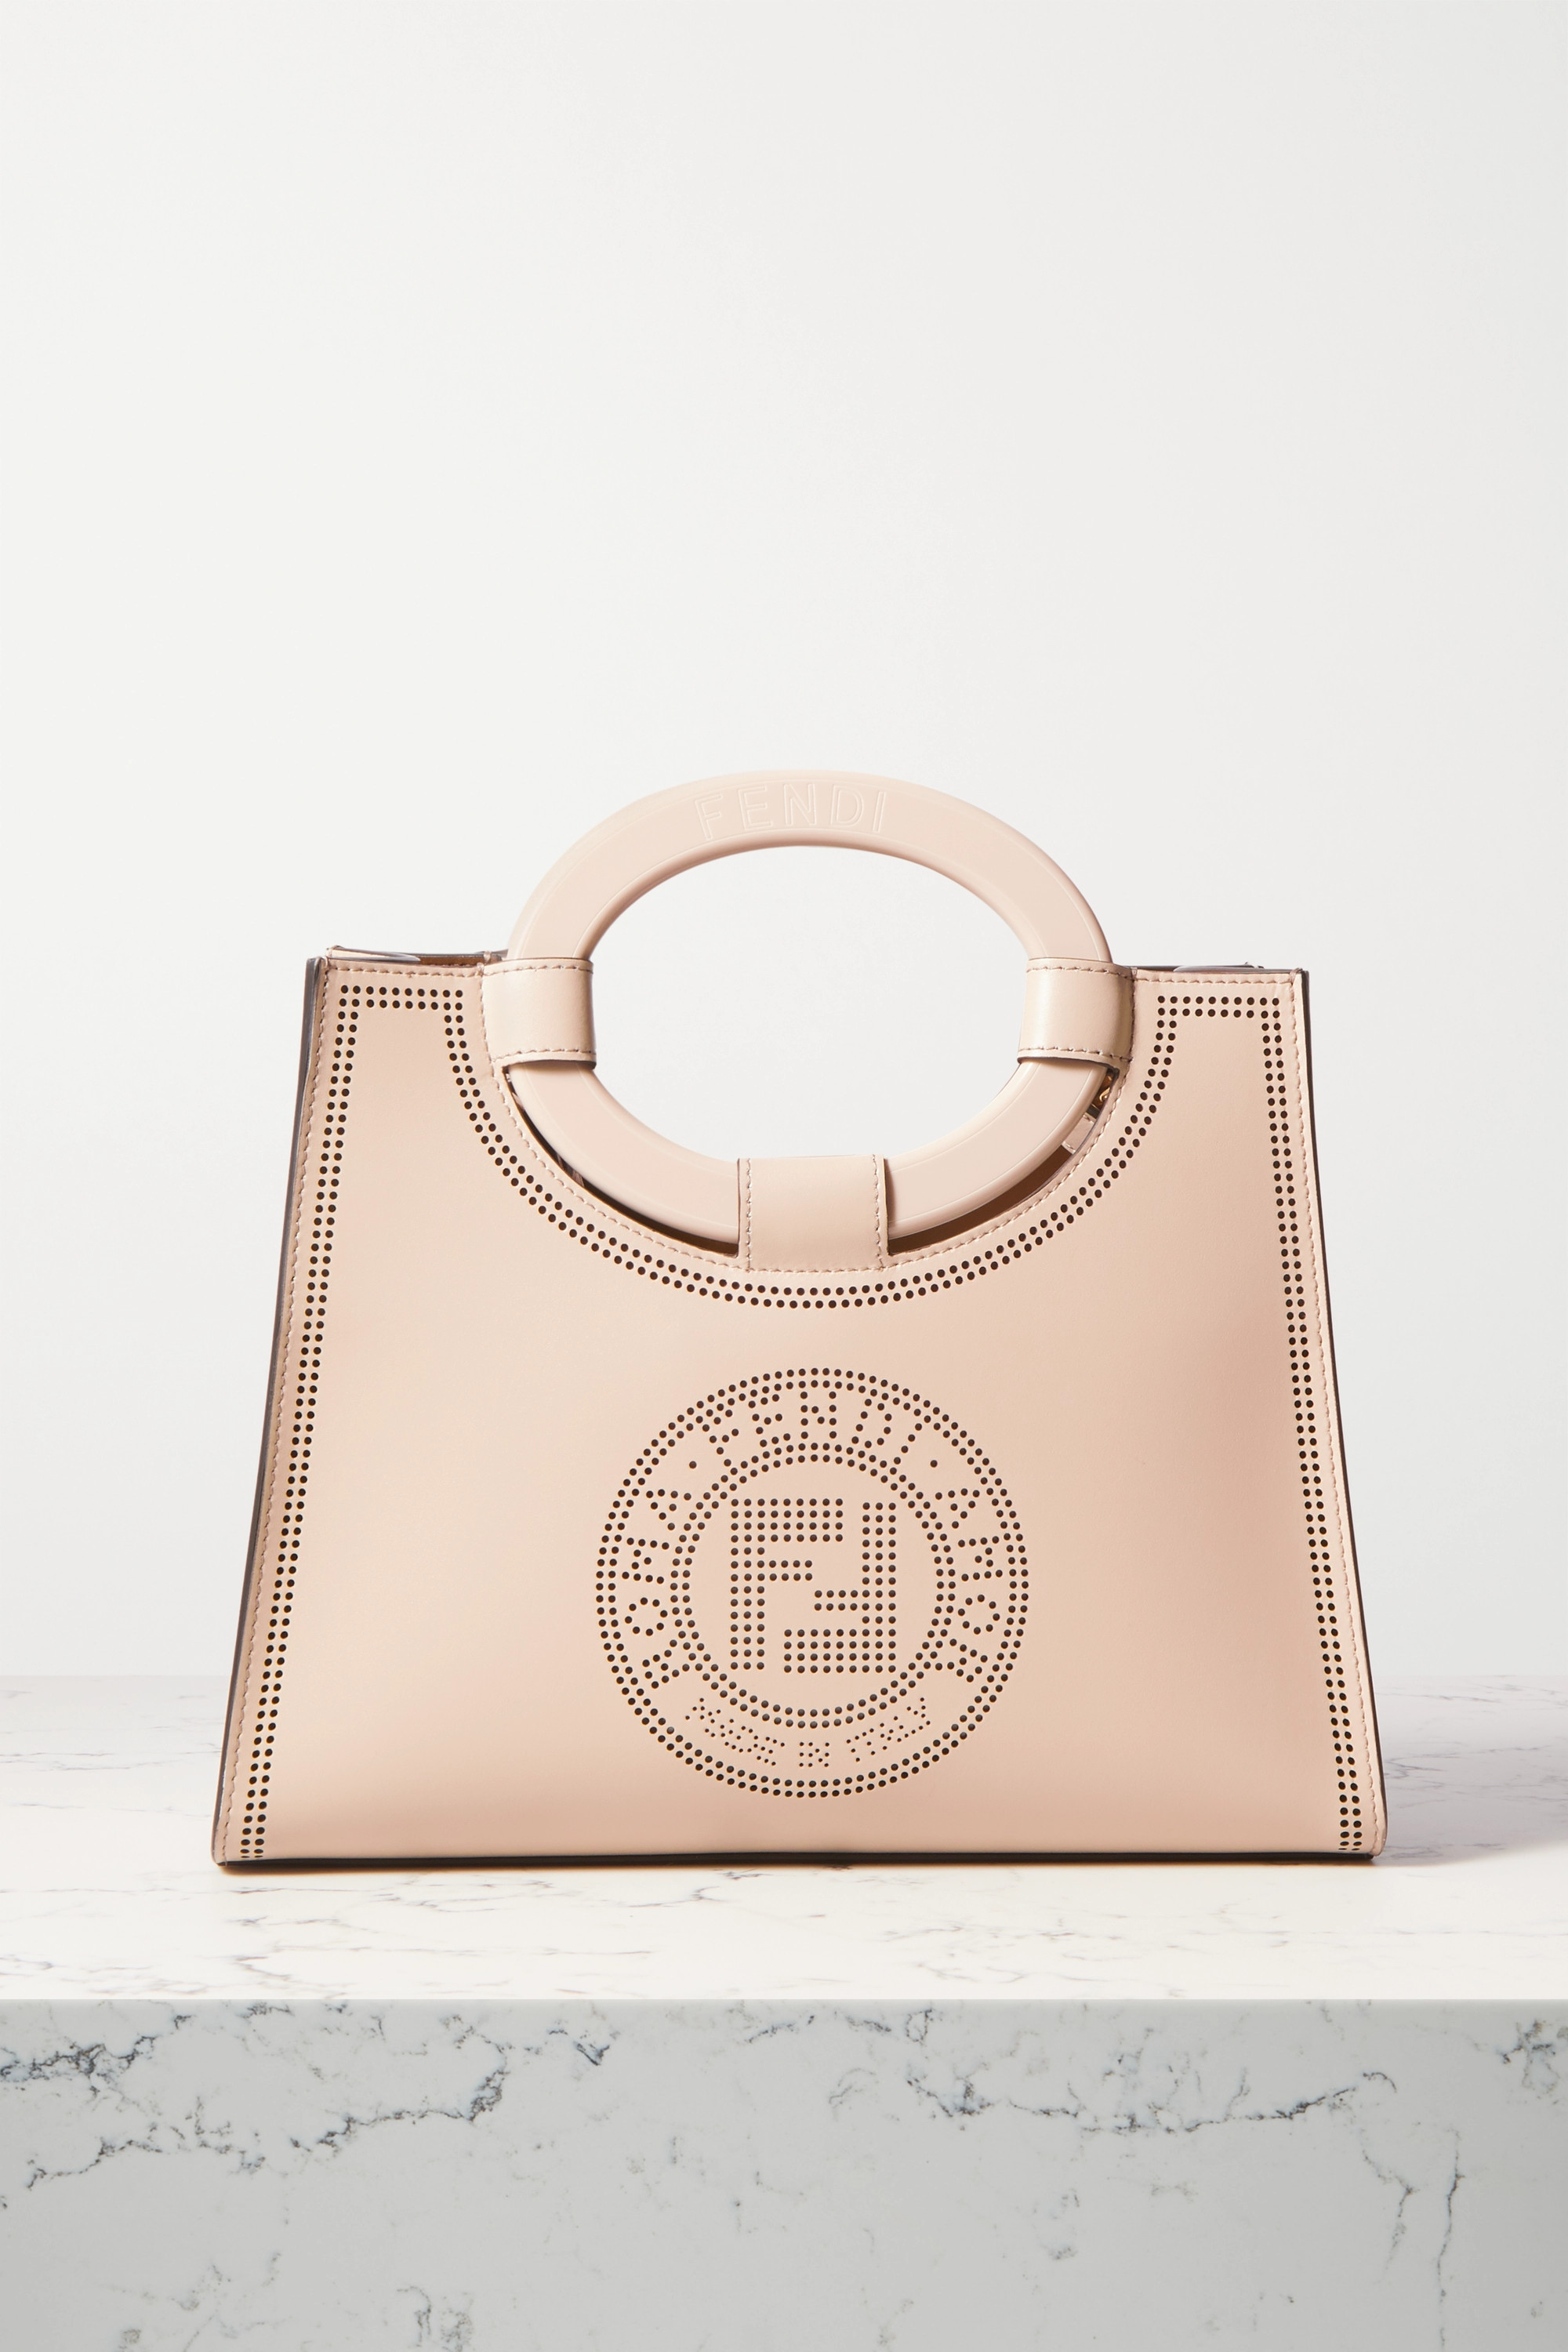 Fendi Runaway small perforated leather tote